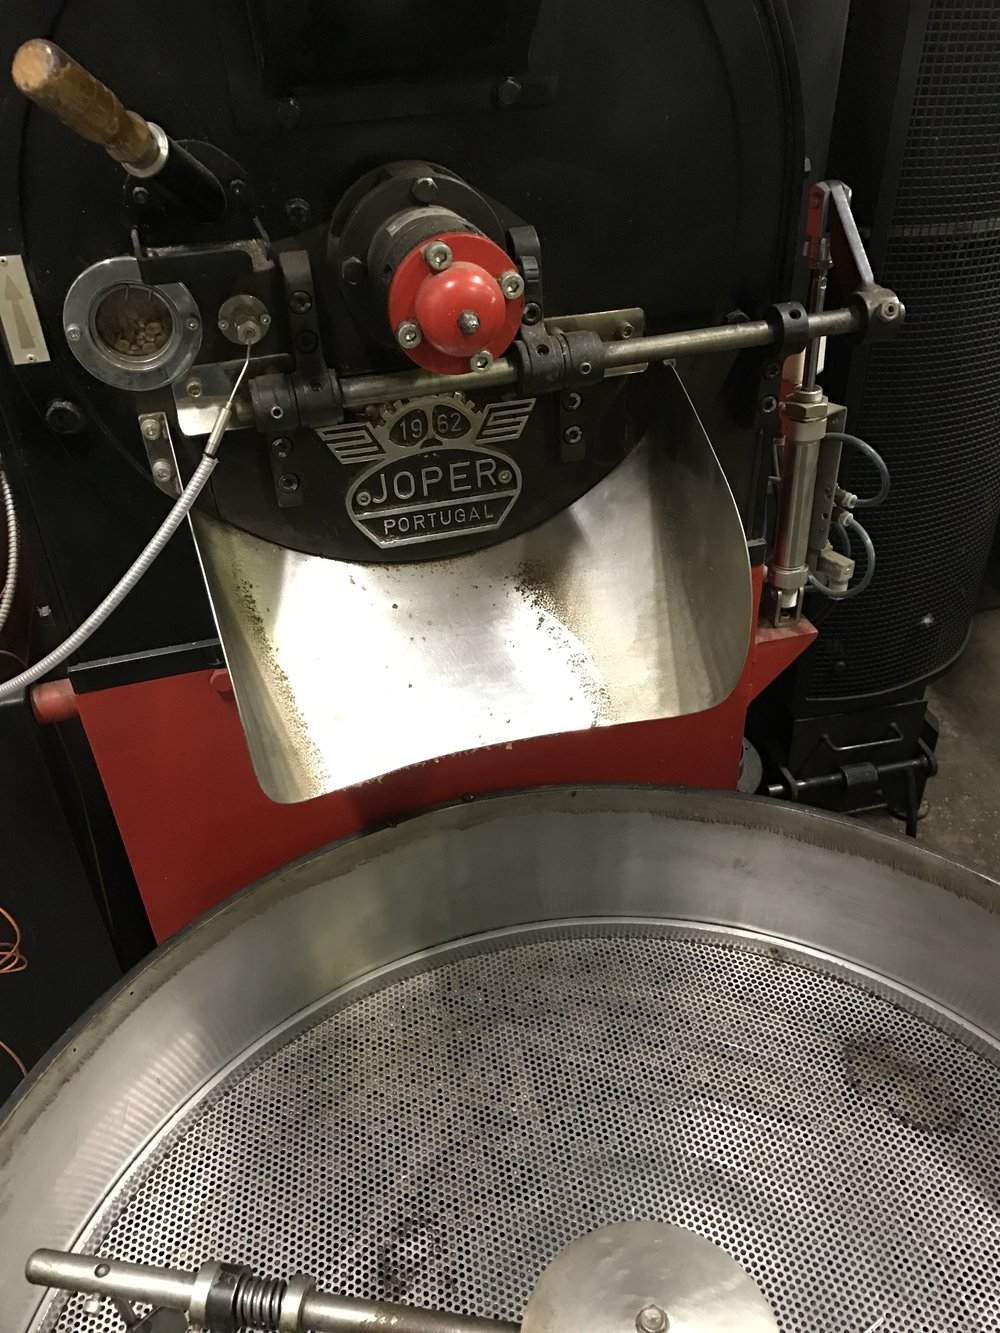 small-batch-coffee-roasting-madison-wi.JPG